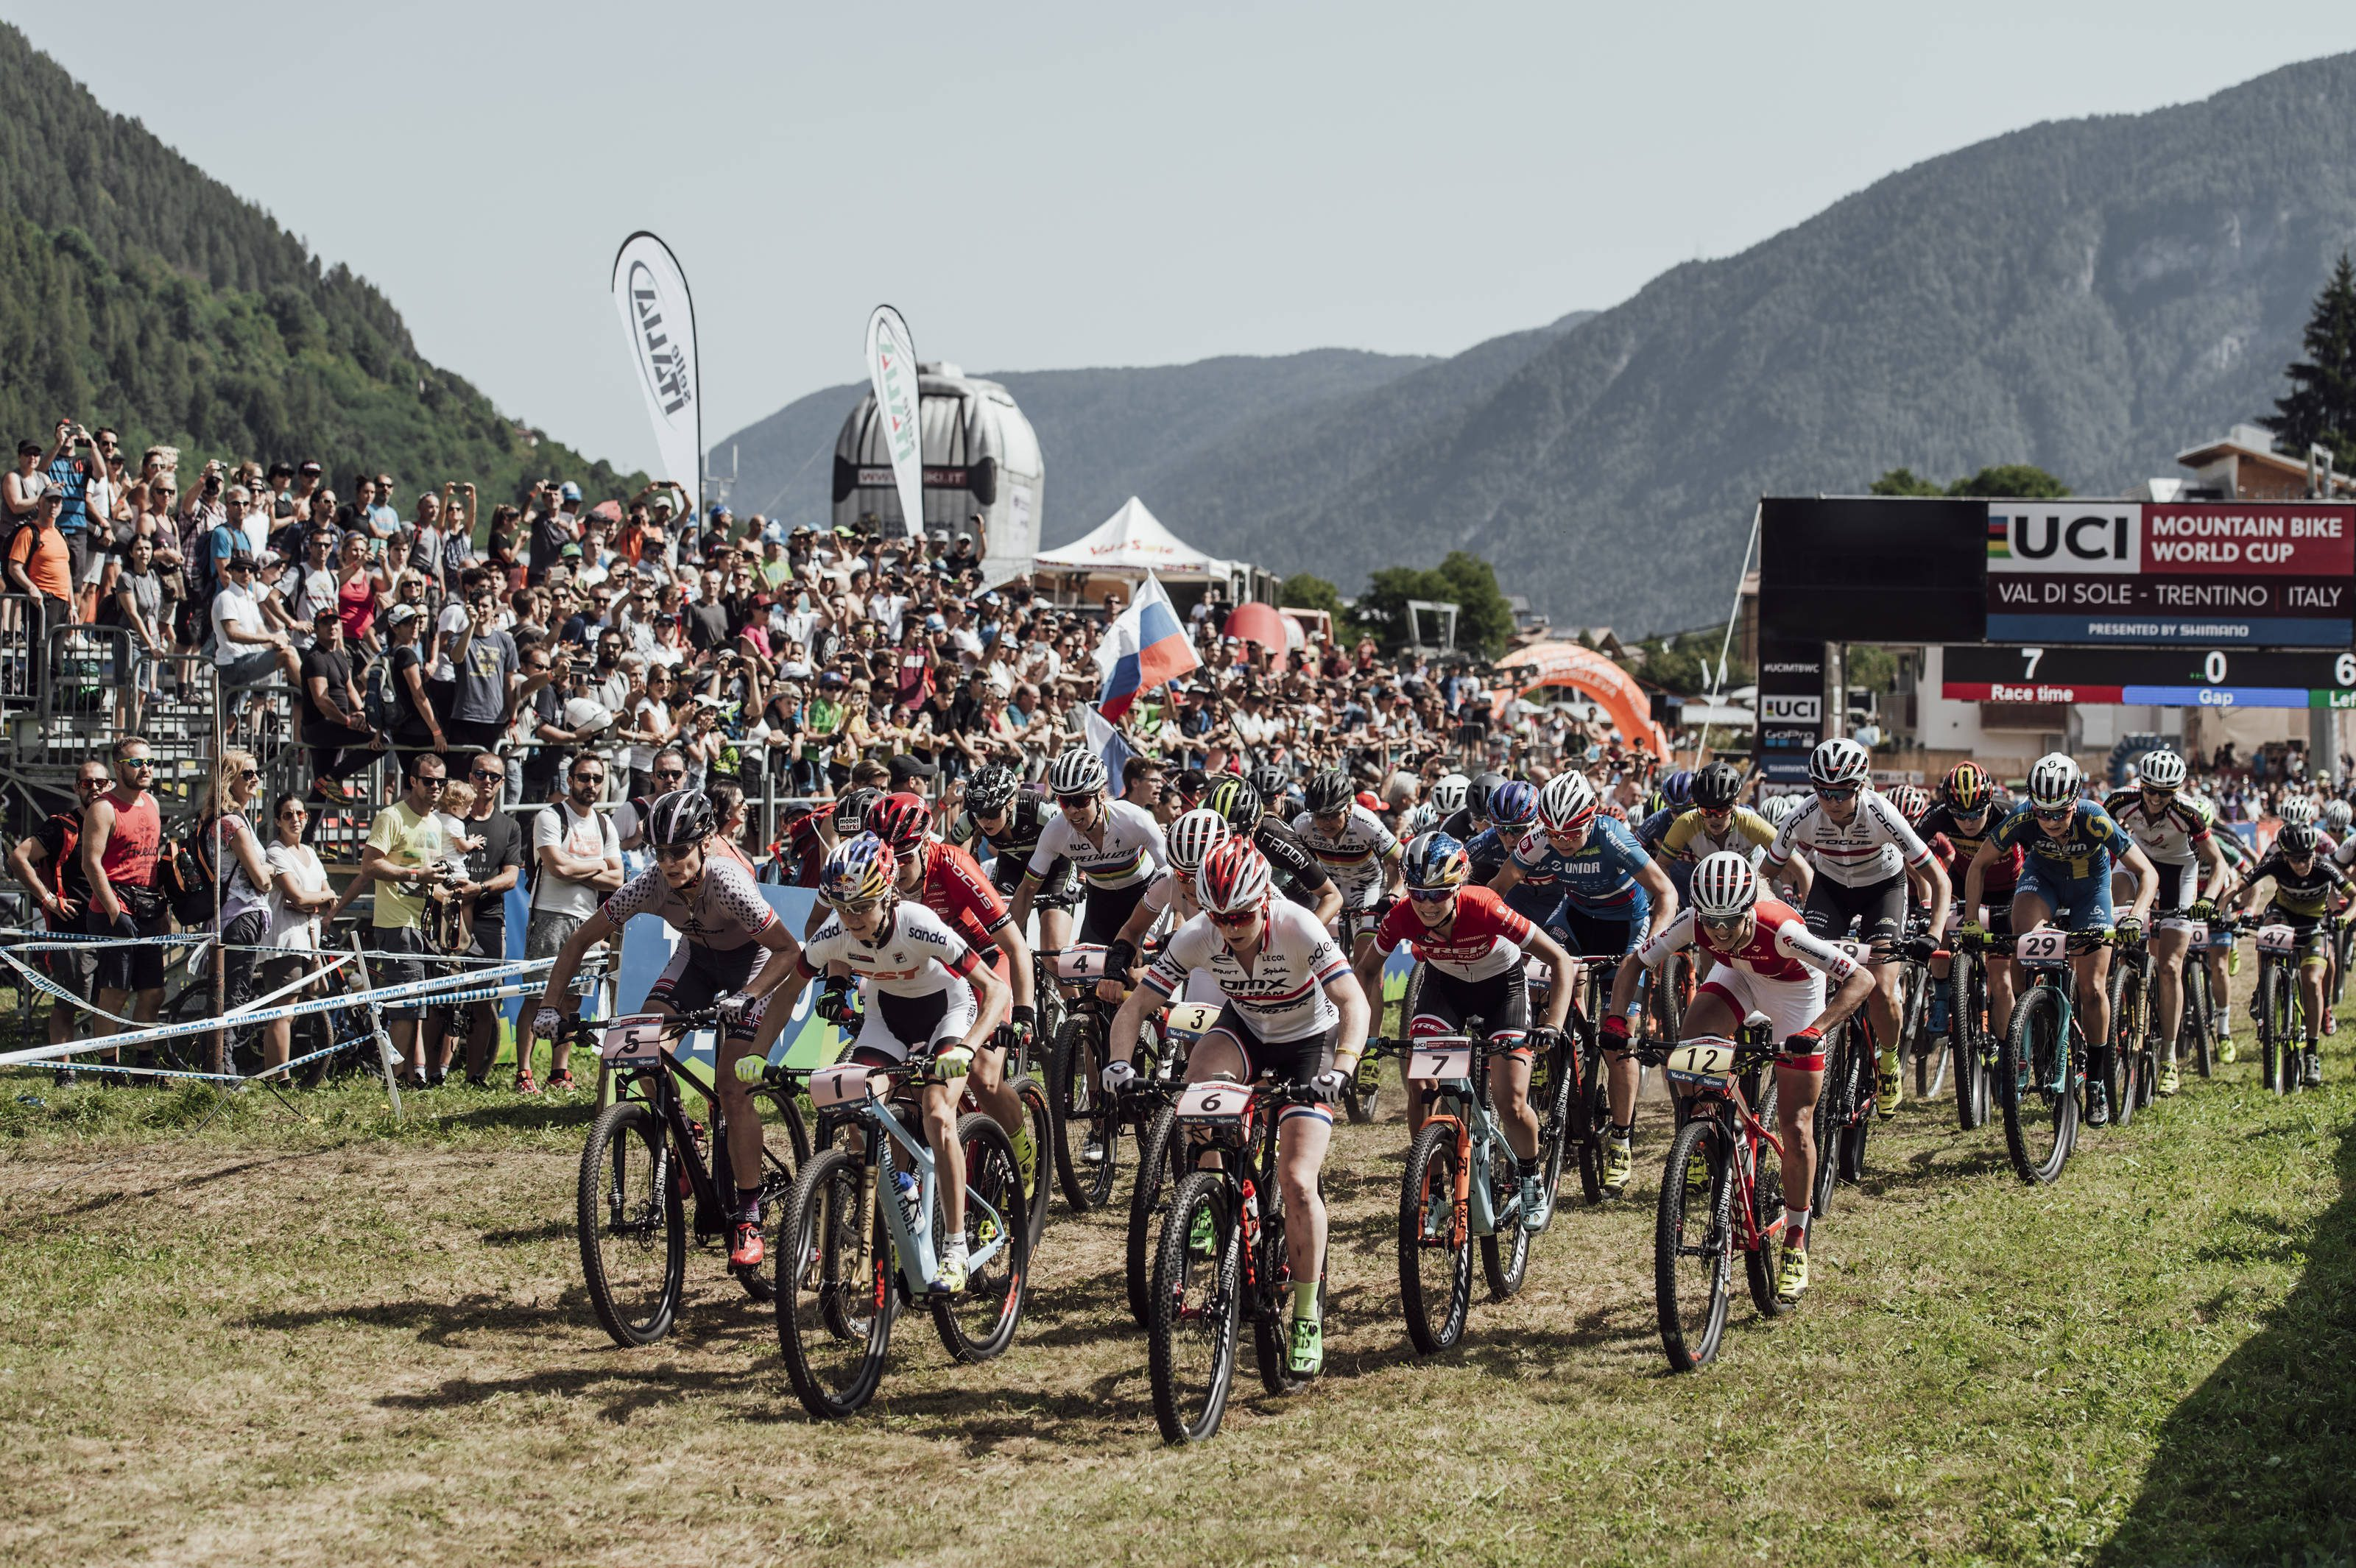 val di sole italy world cup XCO